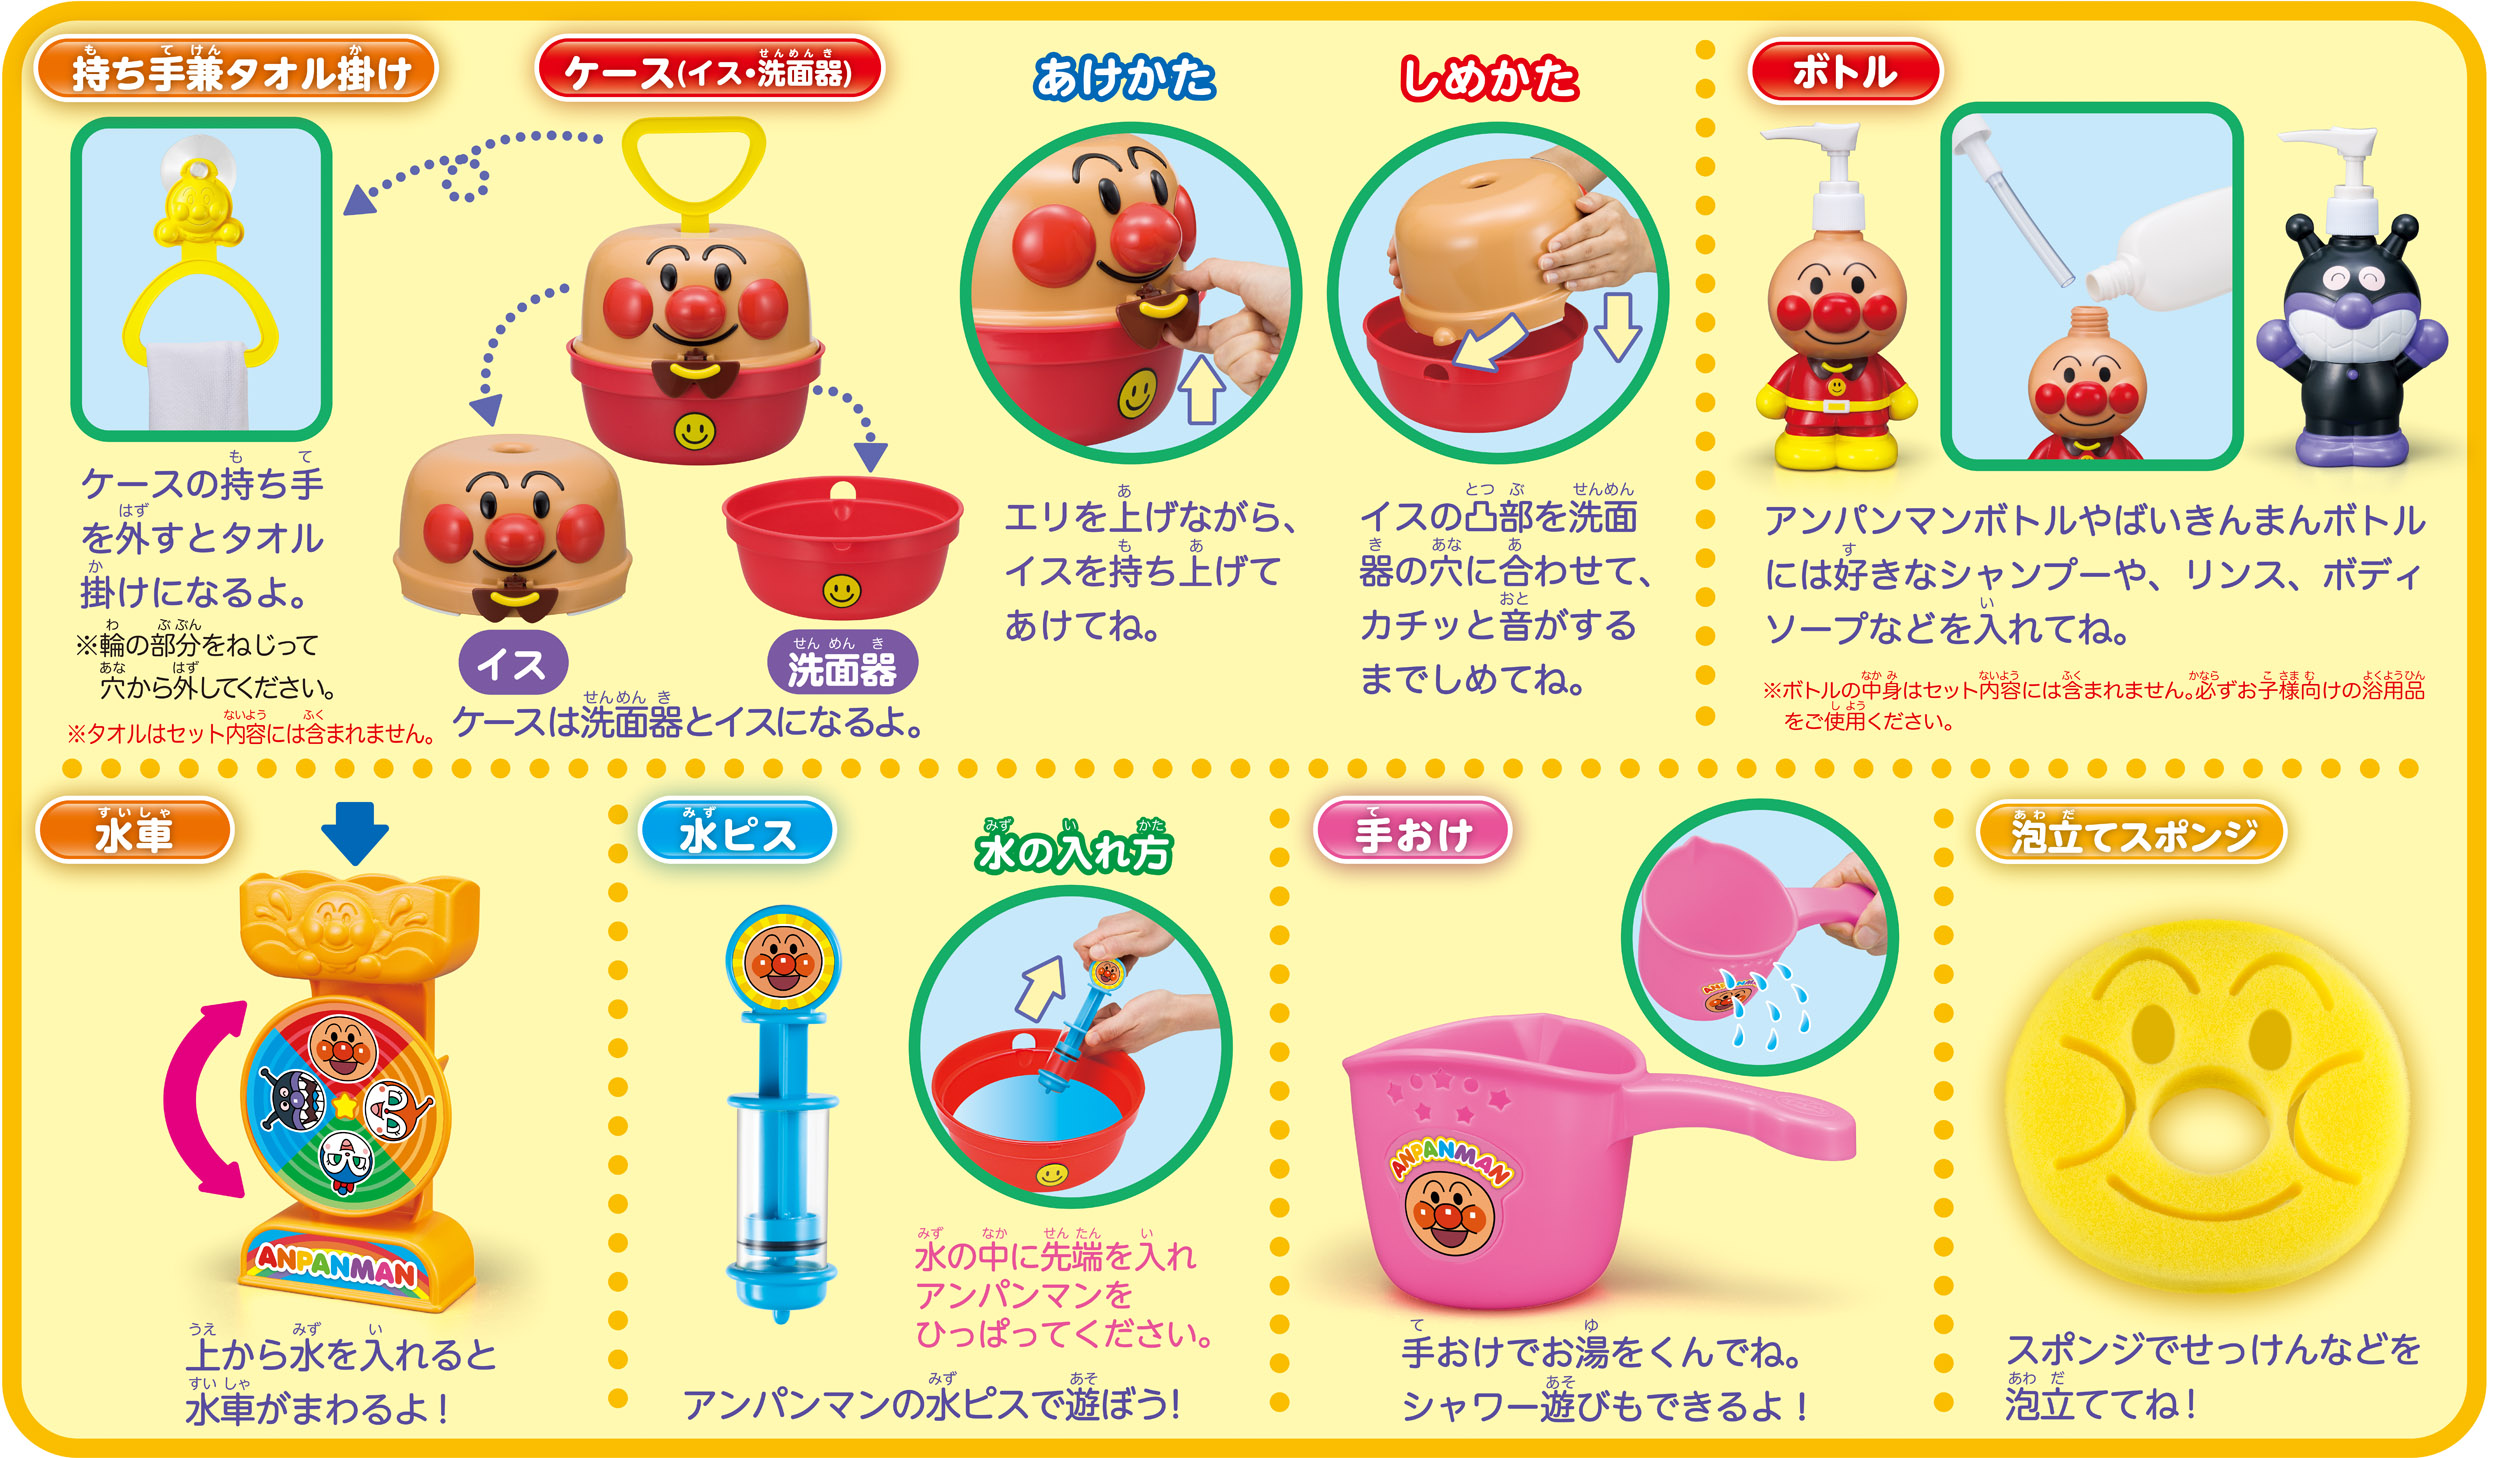 http://www.agatsuma.co.jp/product_test/new_goods/image/anpanman/4971404314245_2_l.jpg